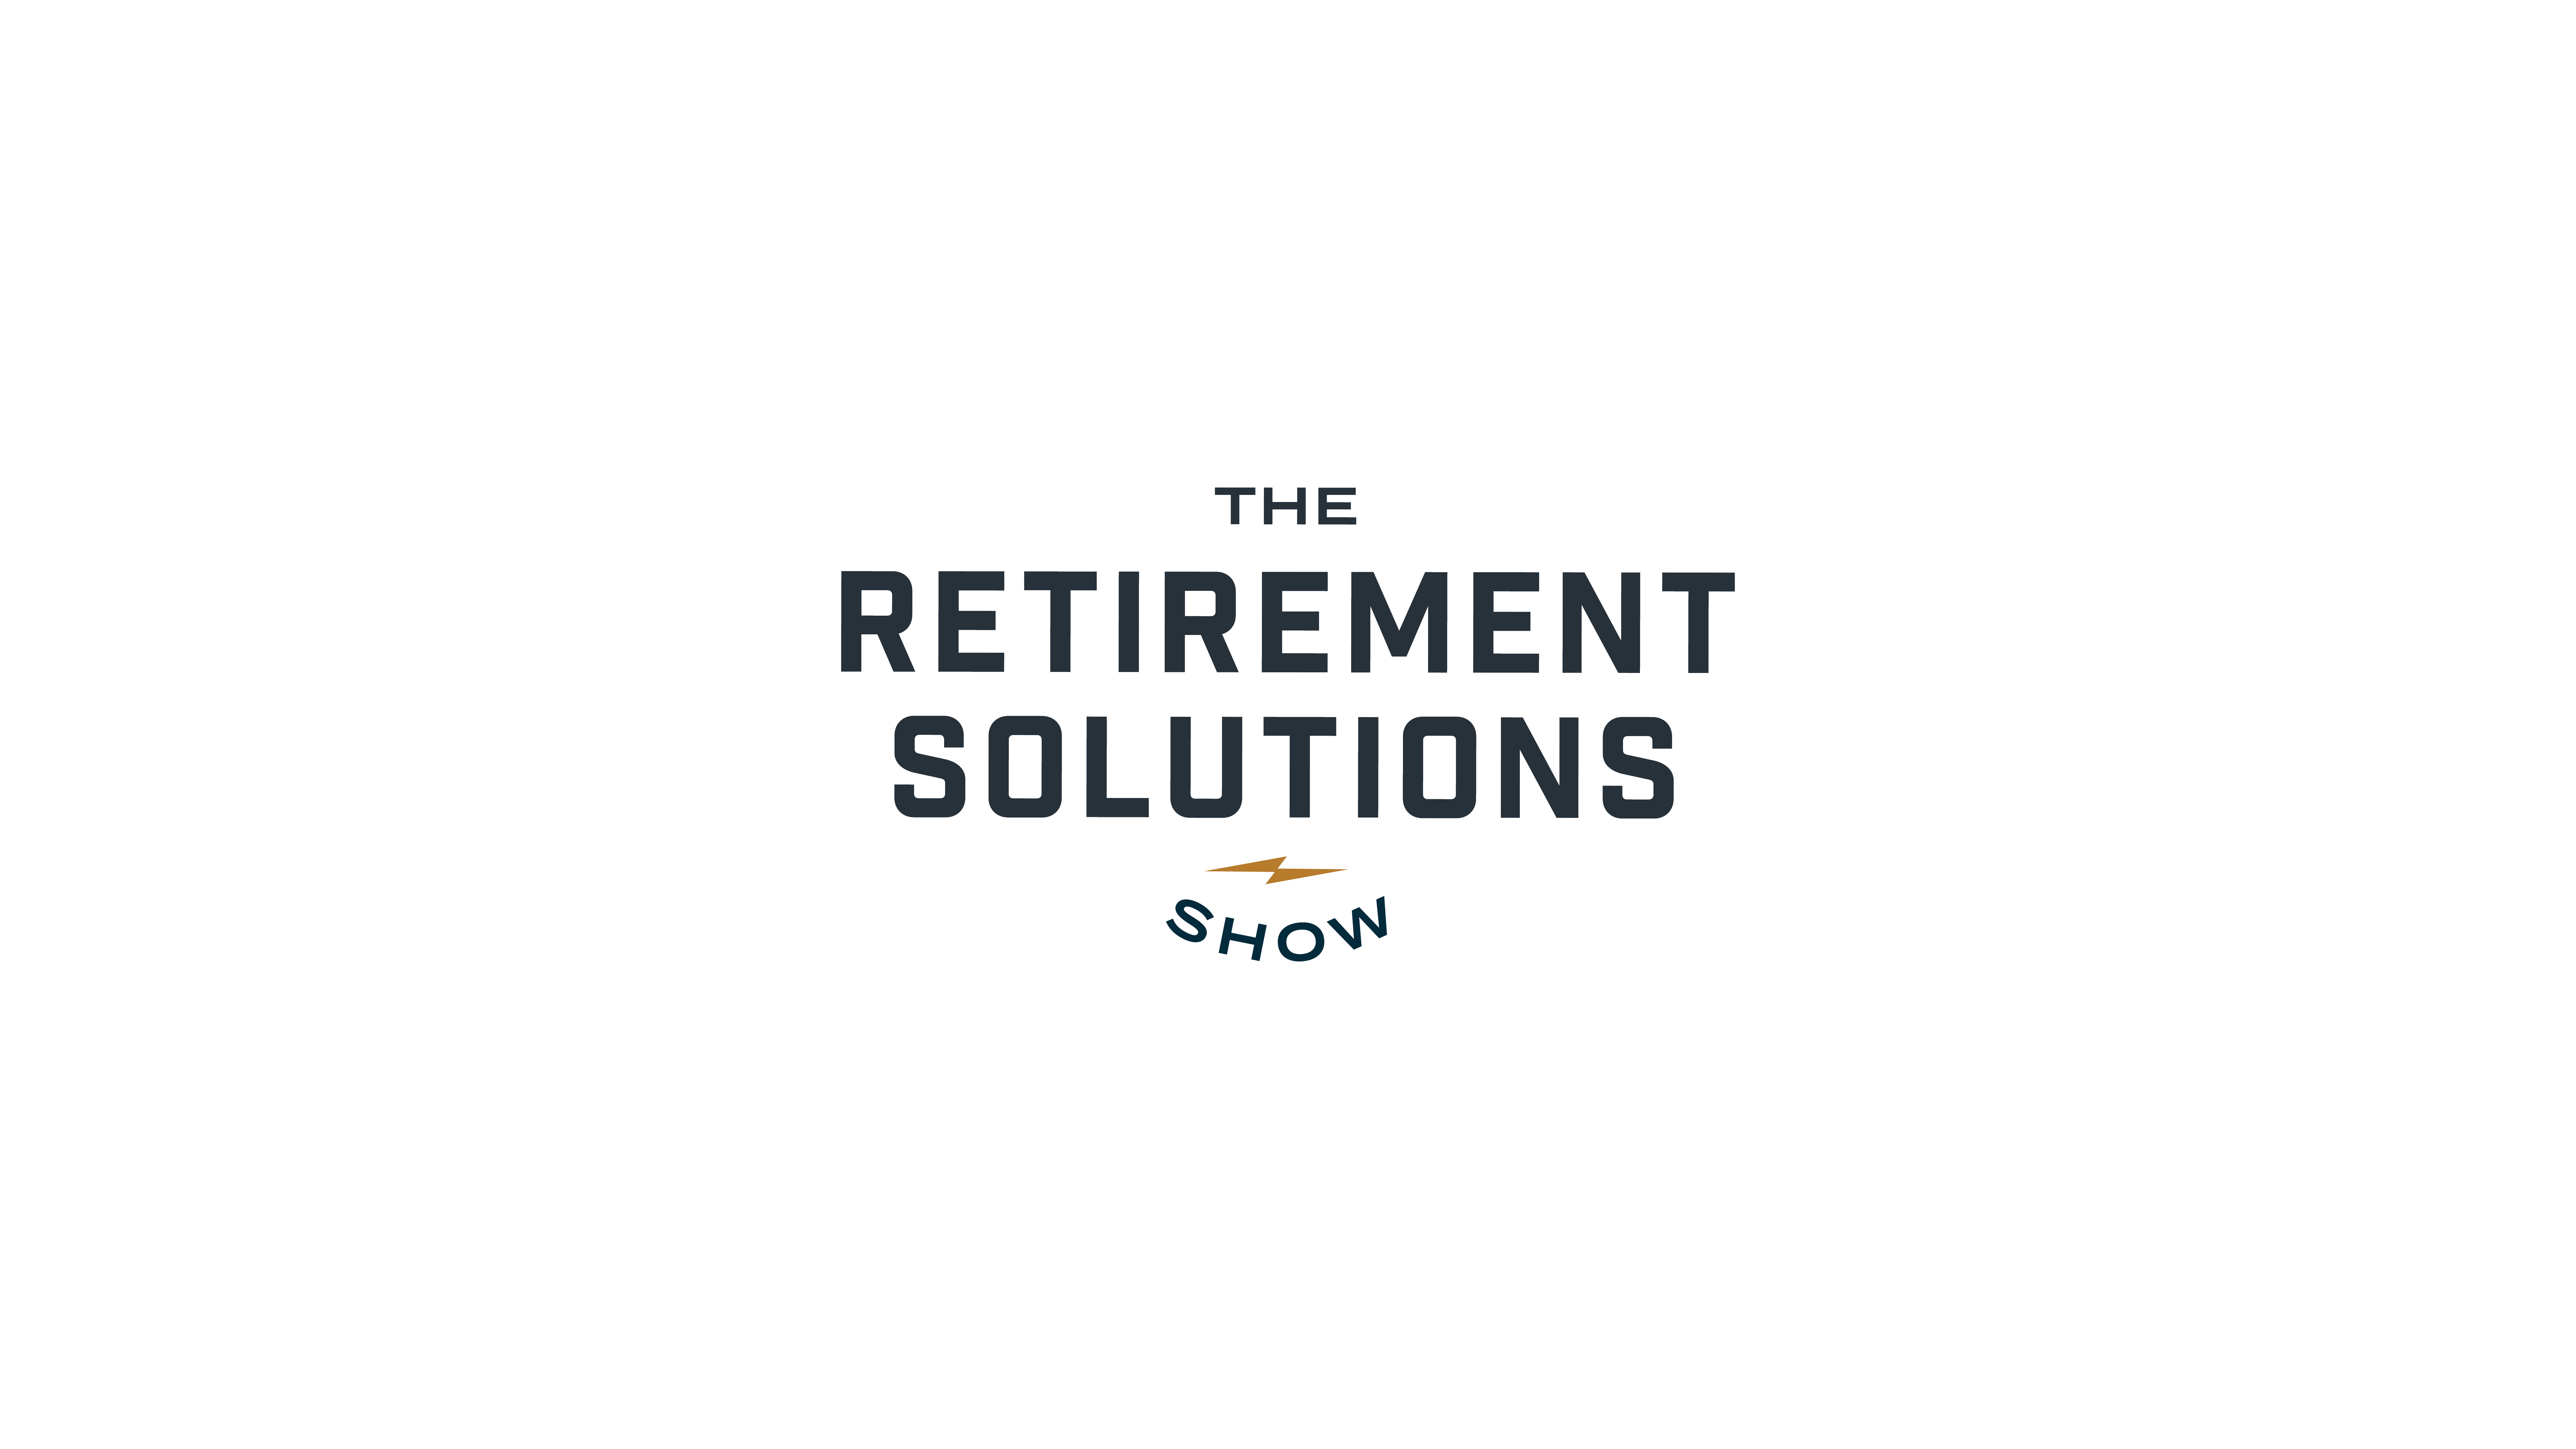 The Retirement Solutions Show logo